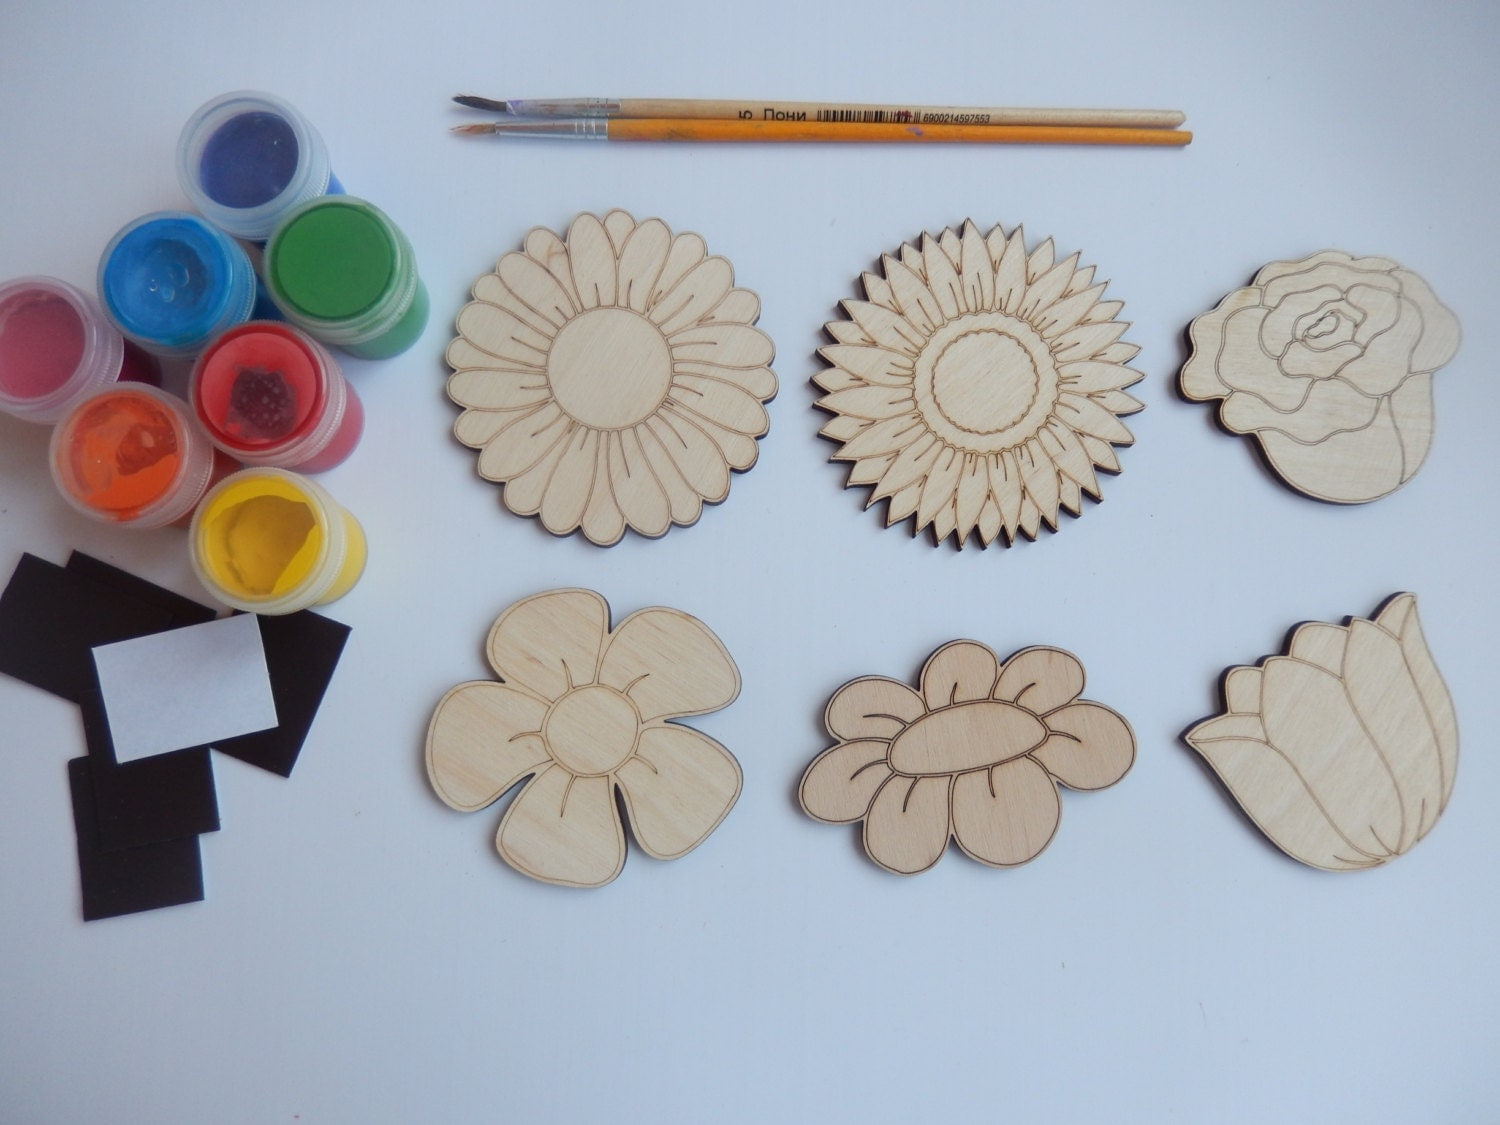 Kids wood craft kits - 6 Flower Wood Craft Shapes For Coloring Diy Kits Handmade Craft Supply Easy Kids Craft Set Flower Cutouts Simple Kids Crafts016